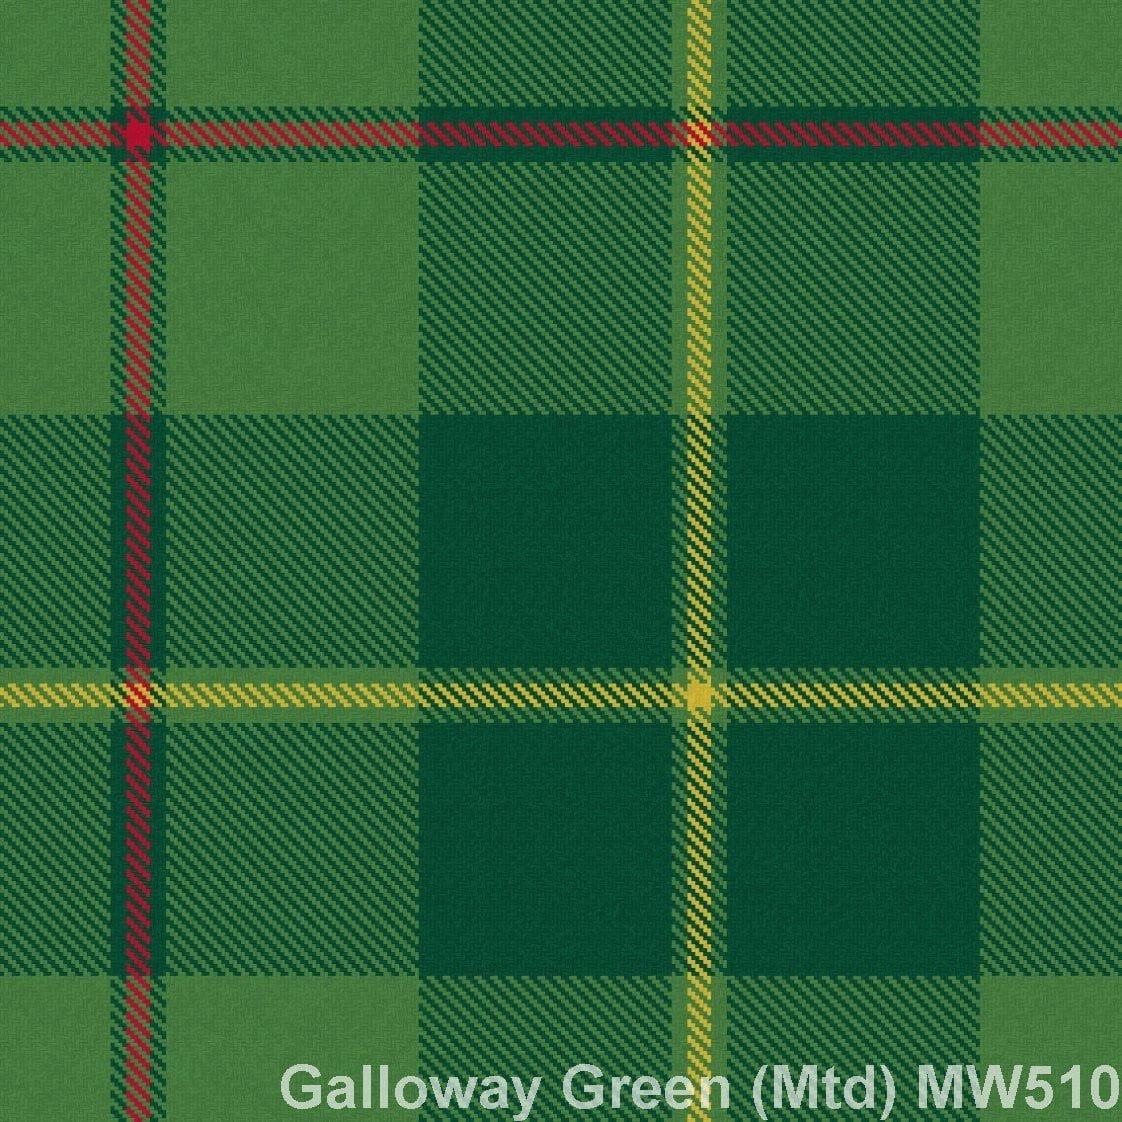 Galloway Green Muted